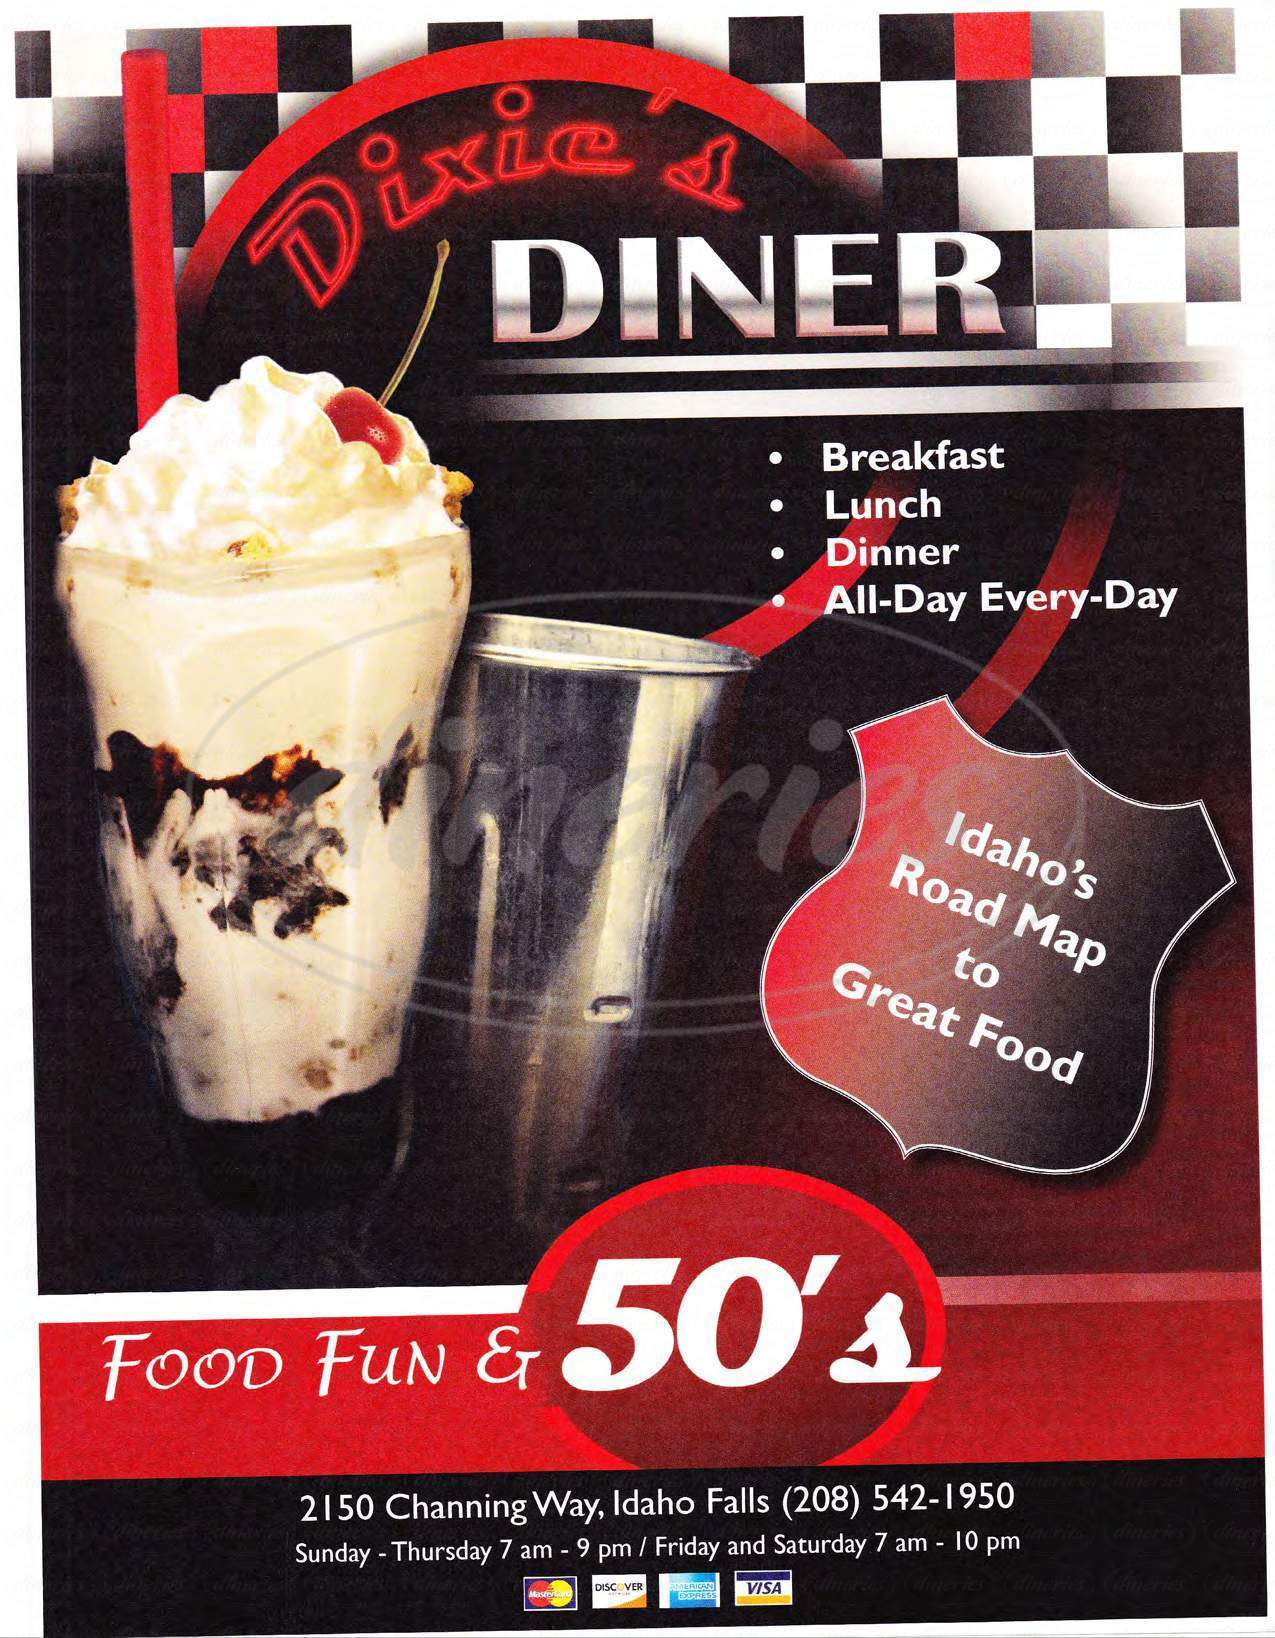 menu for Dixie's Diner